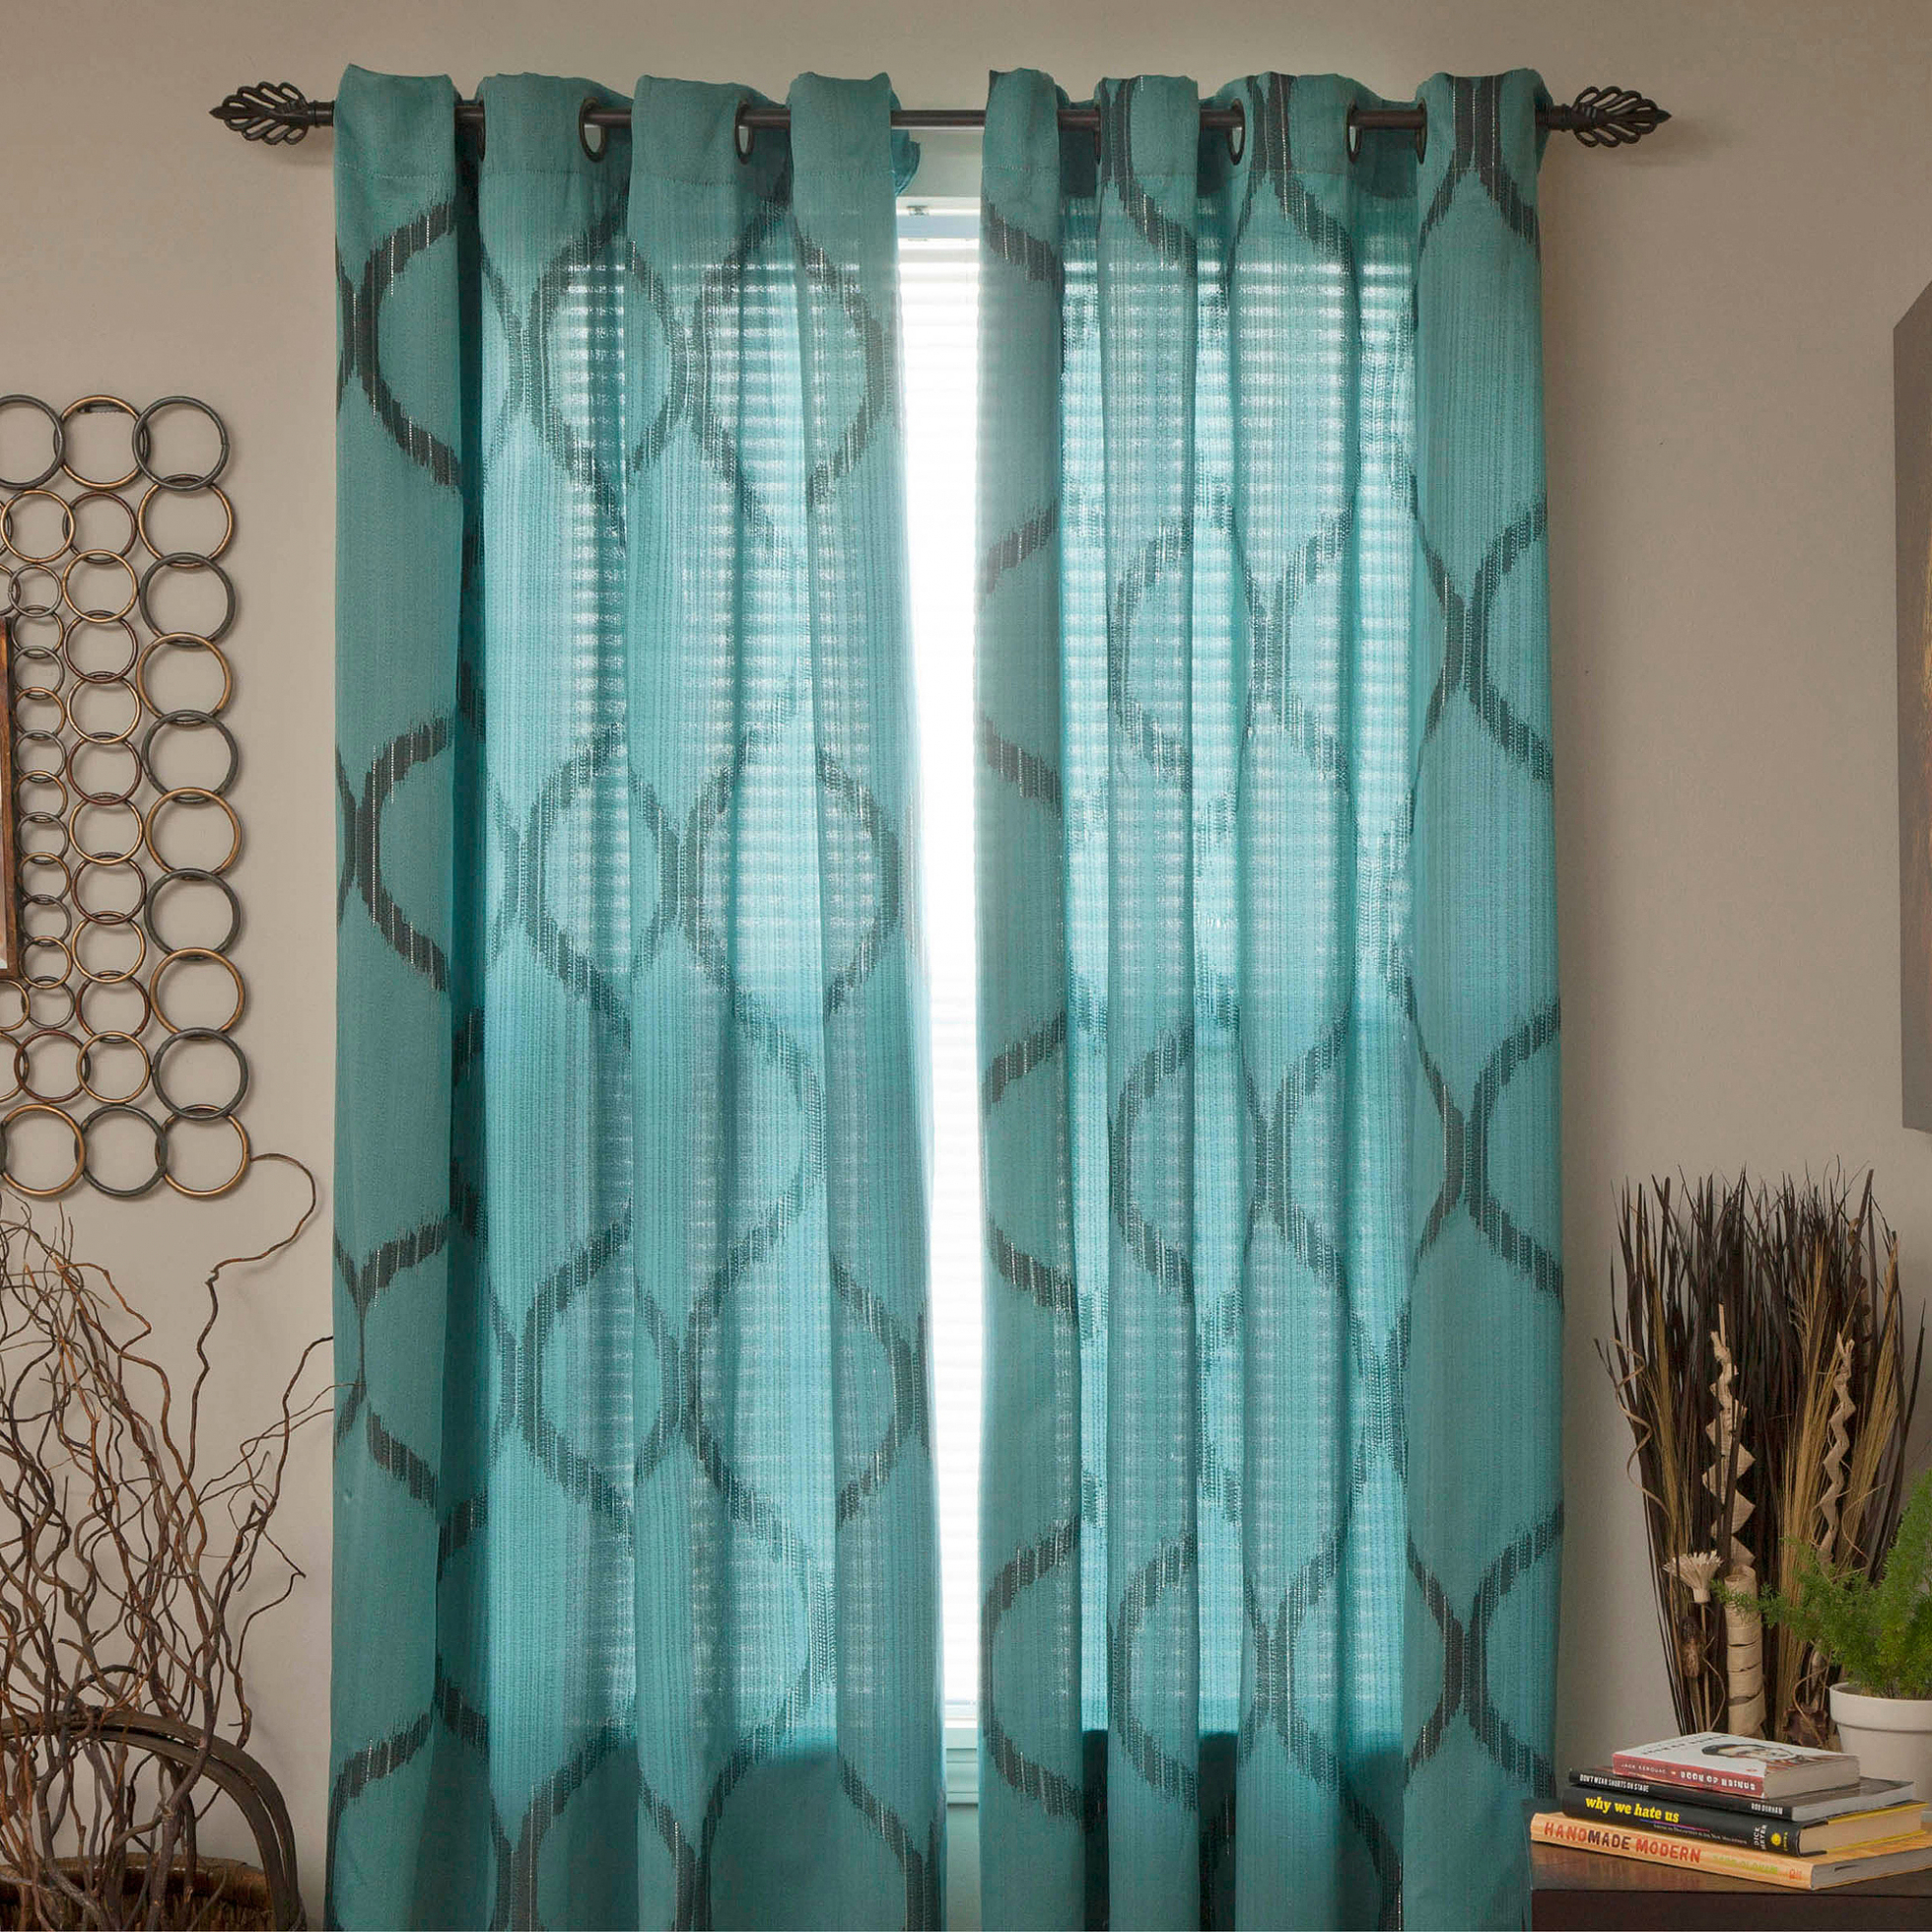 Amazing Living Room Curtains At Walmart | Home Design Gallery Ideas regarding Walmart Living Room Curtains